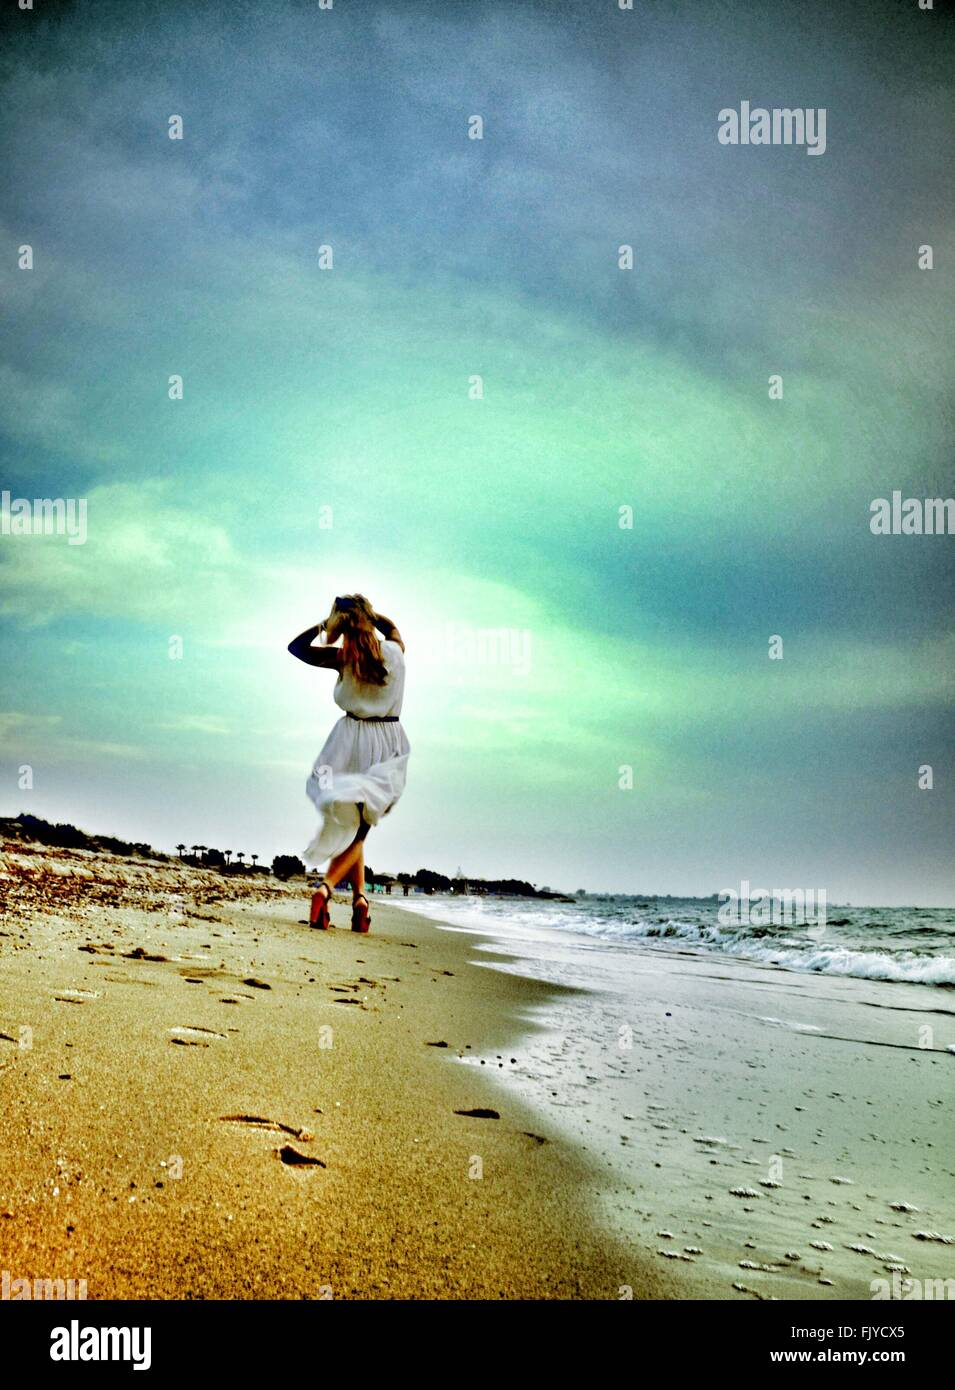 Low Angle View Of Young Woman Walking On Beach Against Cloudy Sky - Stock Image